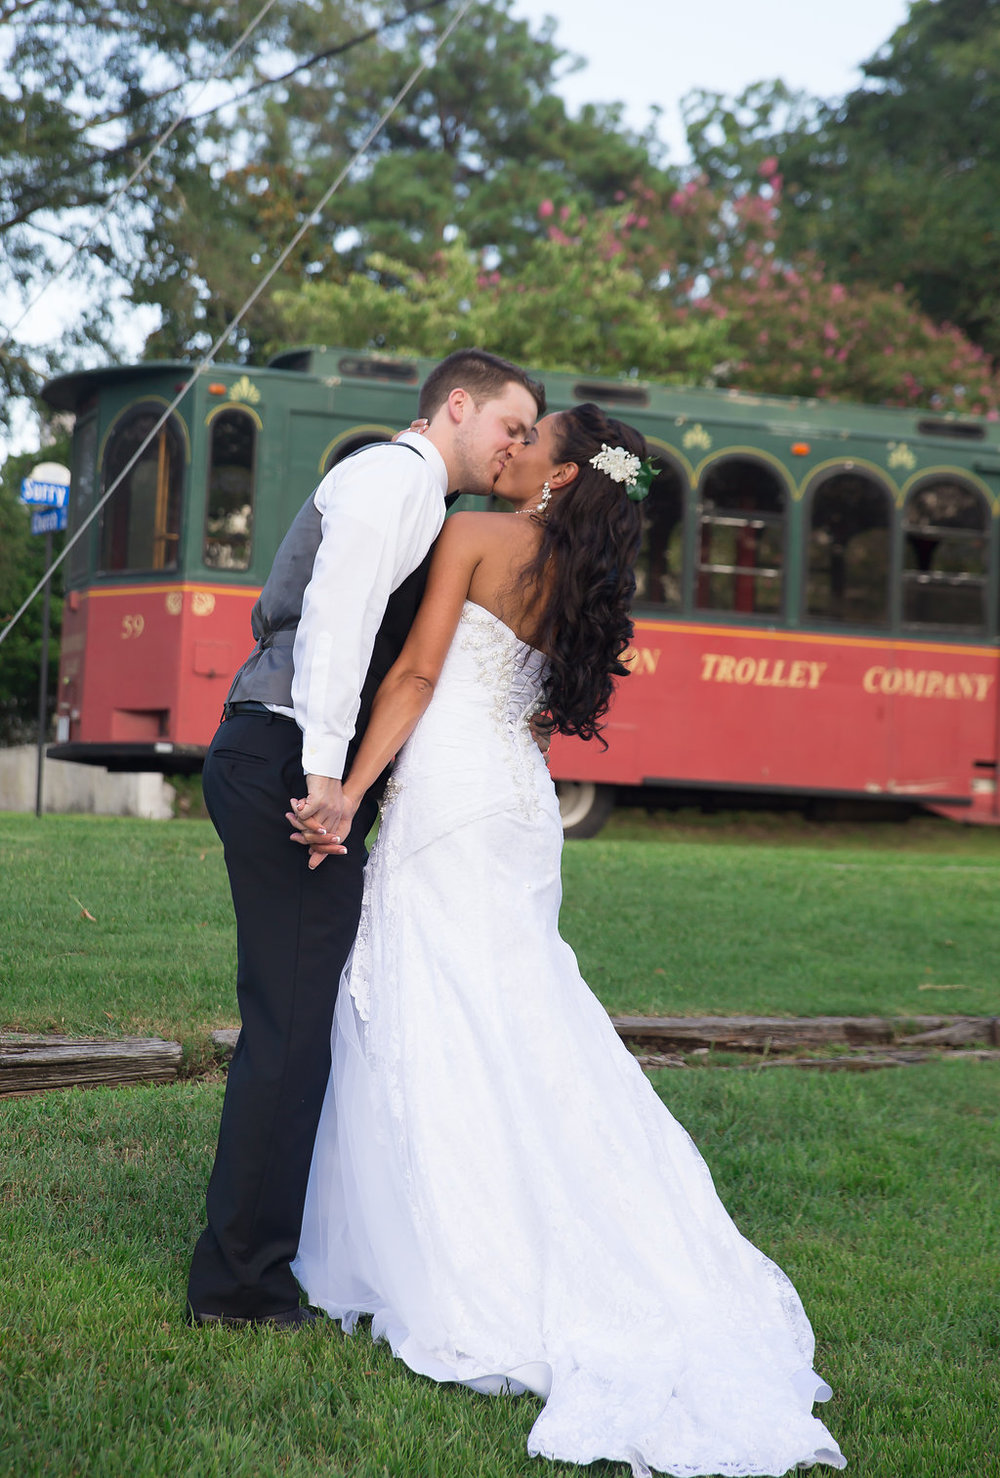 Megan Dickerson Wedding Photography North Carolina kiss in front of trolley